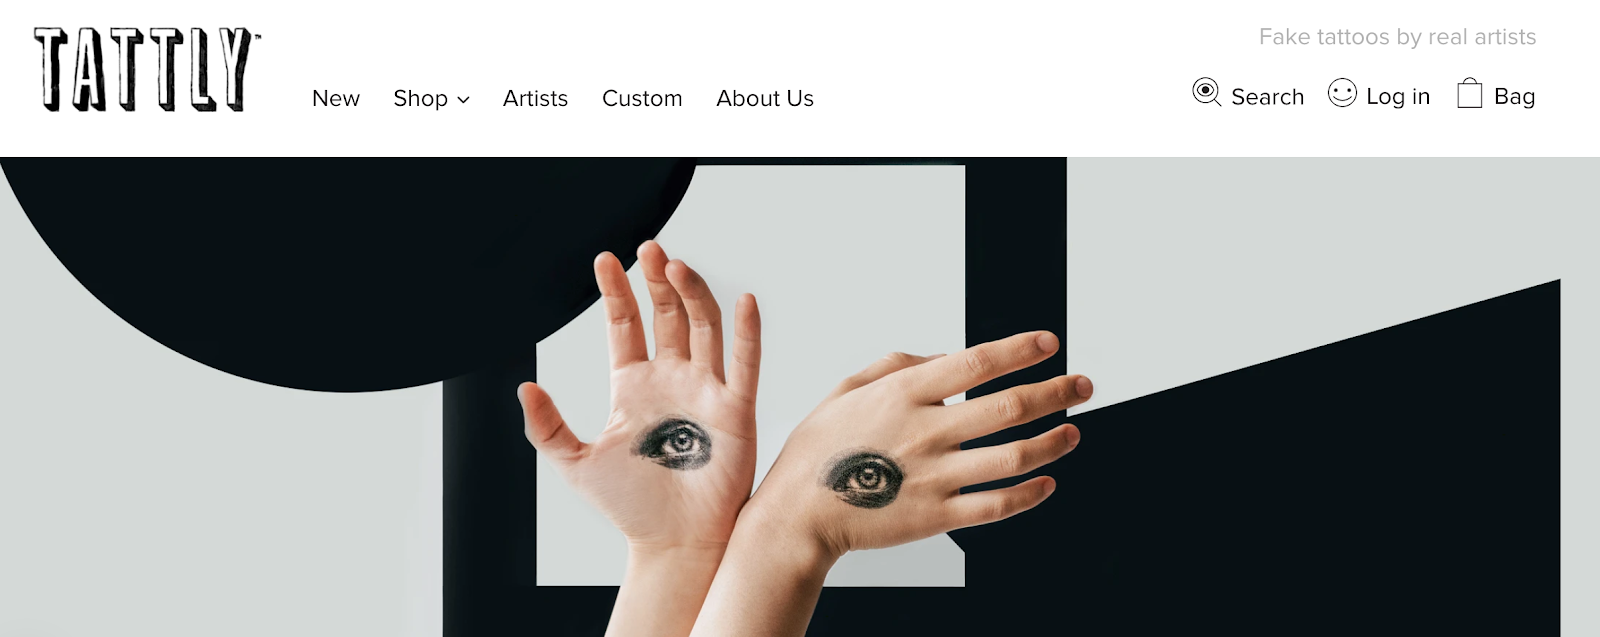 Tattly homepage with hands with tattoos in the background